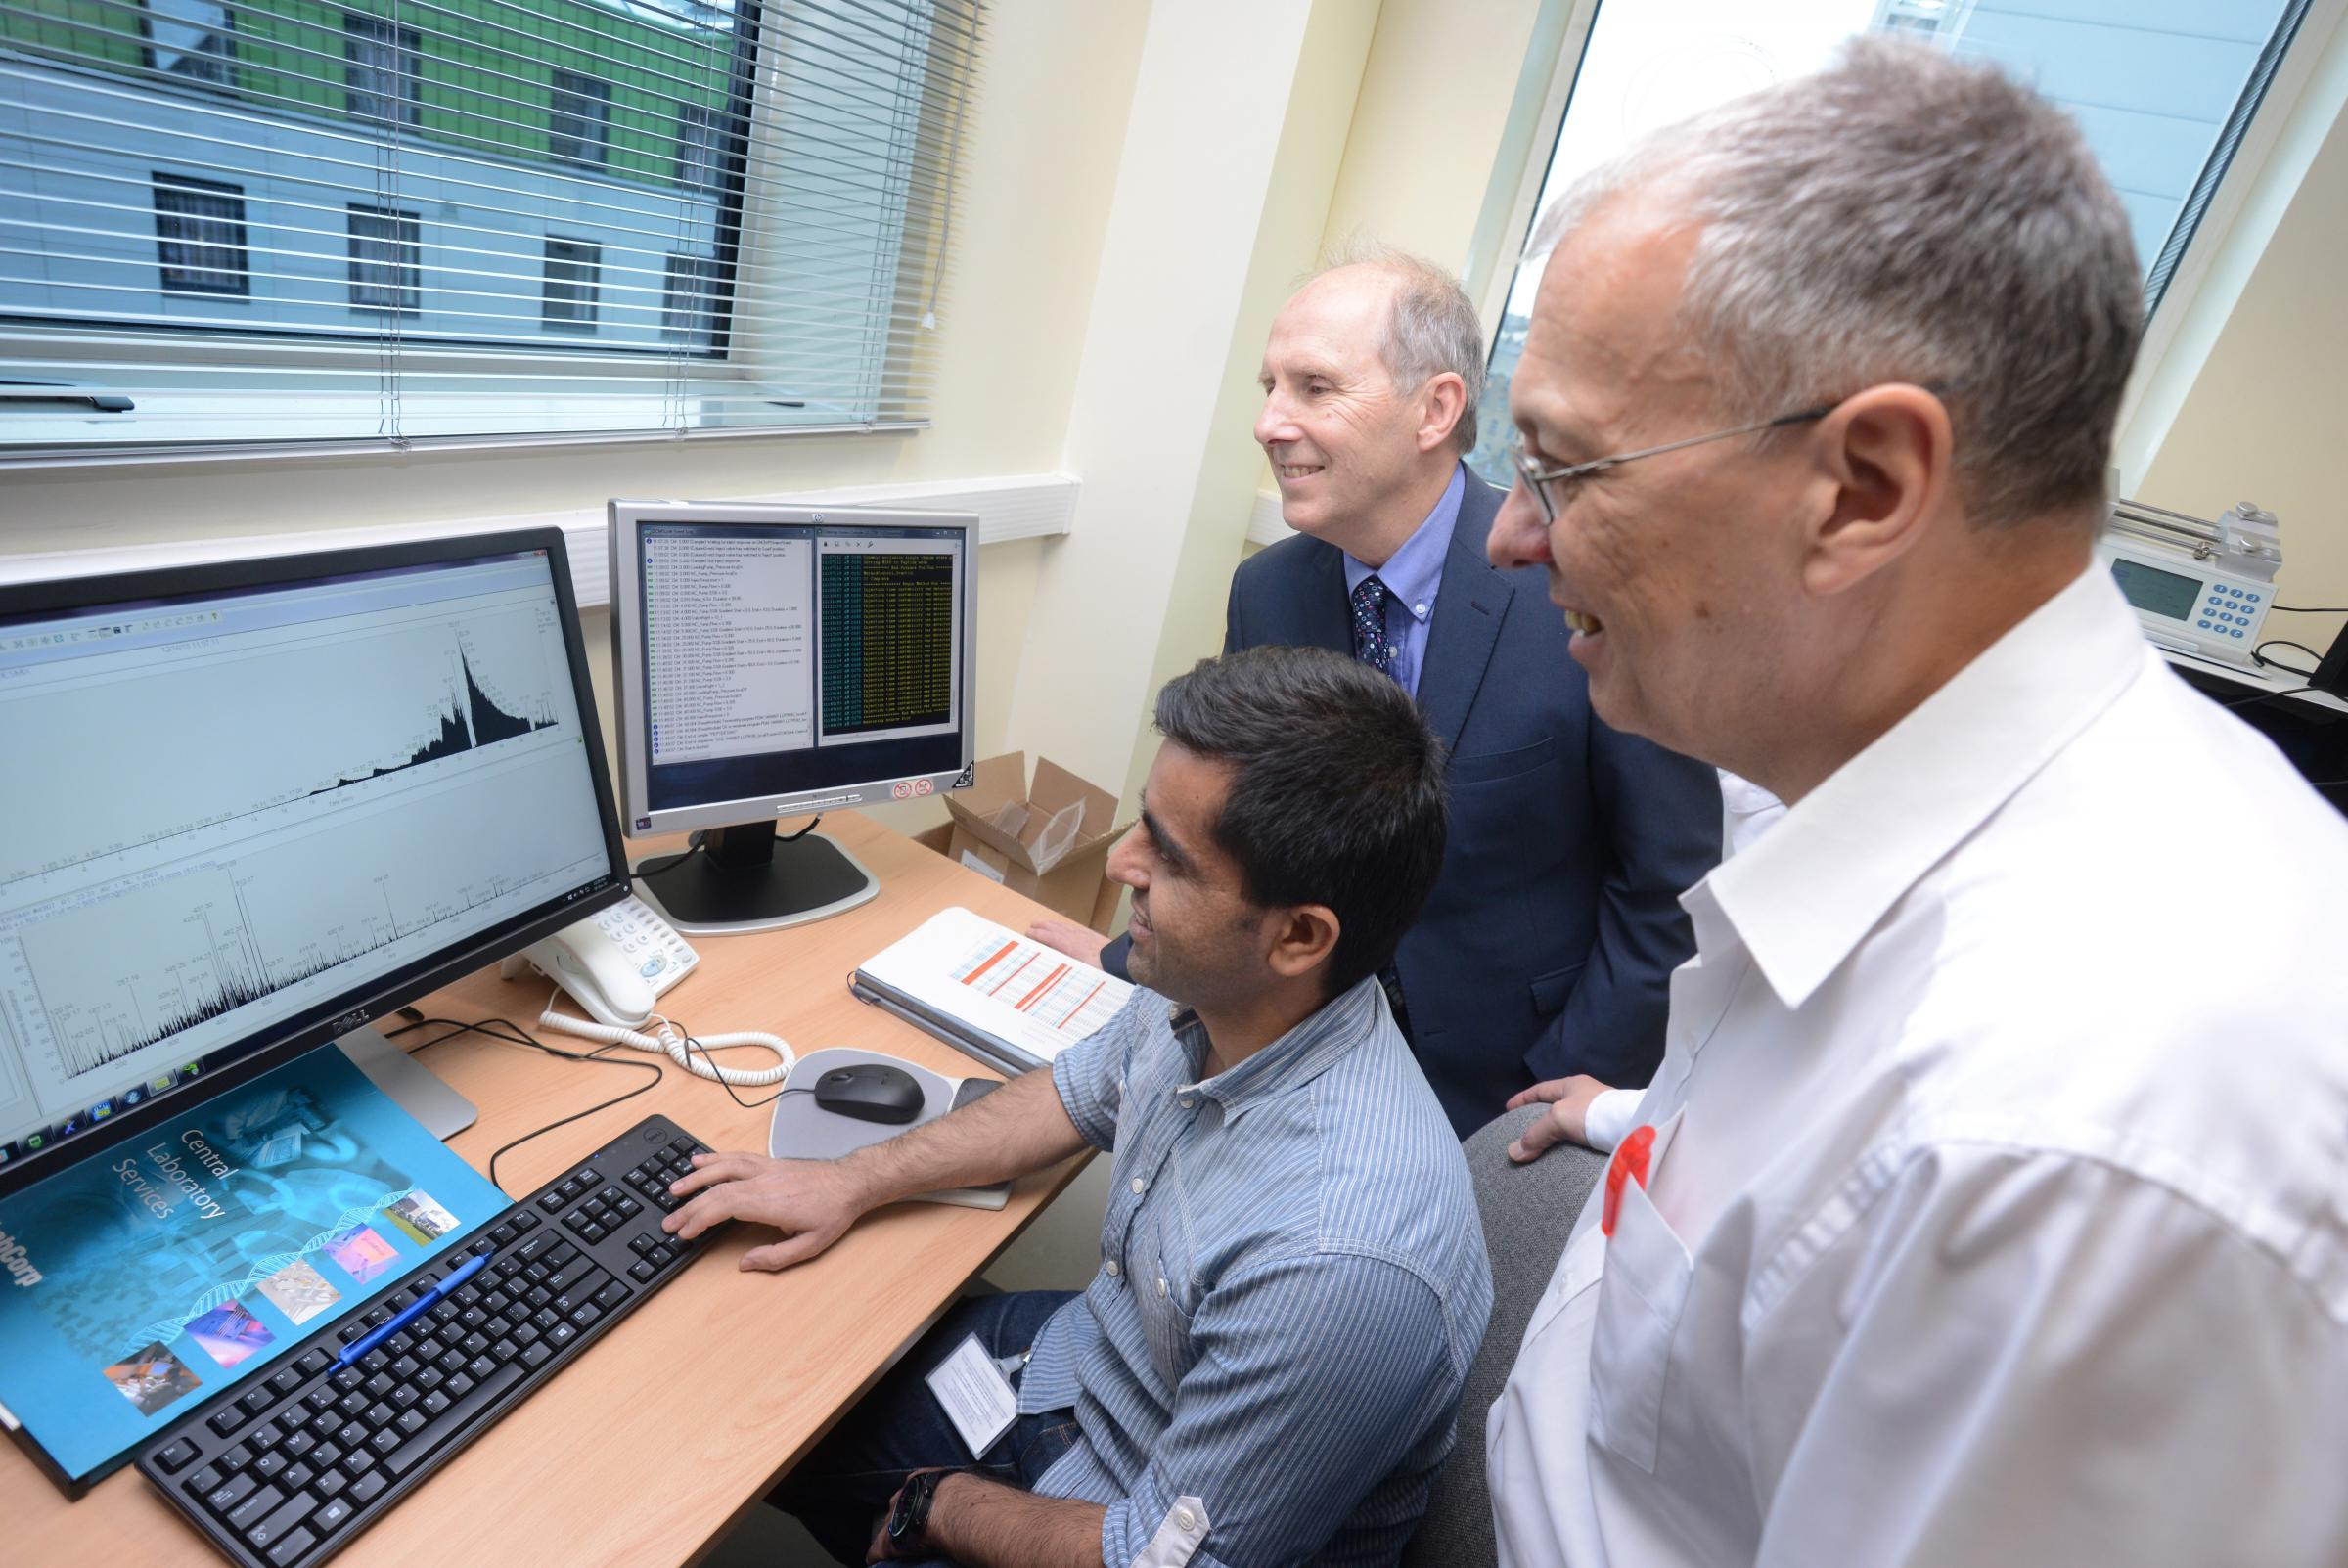 Newly-appointed research technician Sadr Ul Shaheed analyses data from the mass spectrometer machine alongside Professor Laurence Patterson and Dr Chris Sutton at the Institute of Cancer Therapeutics at the University of Bradford